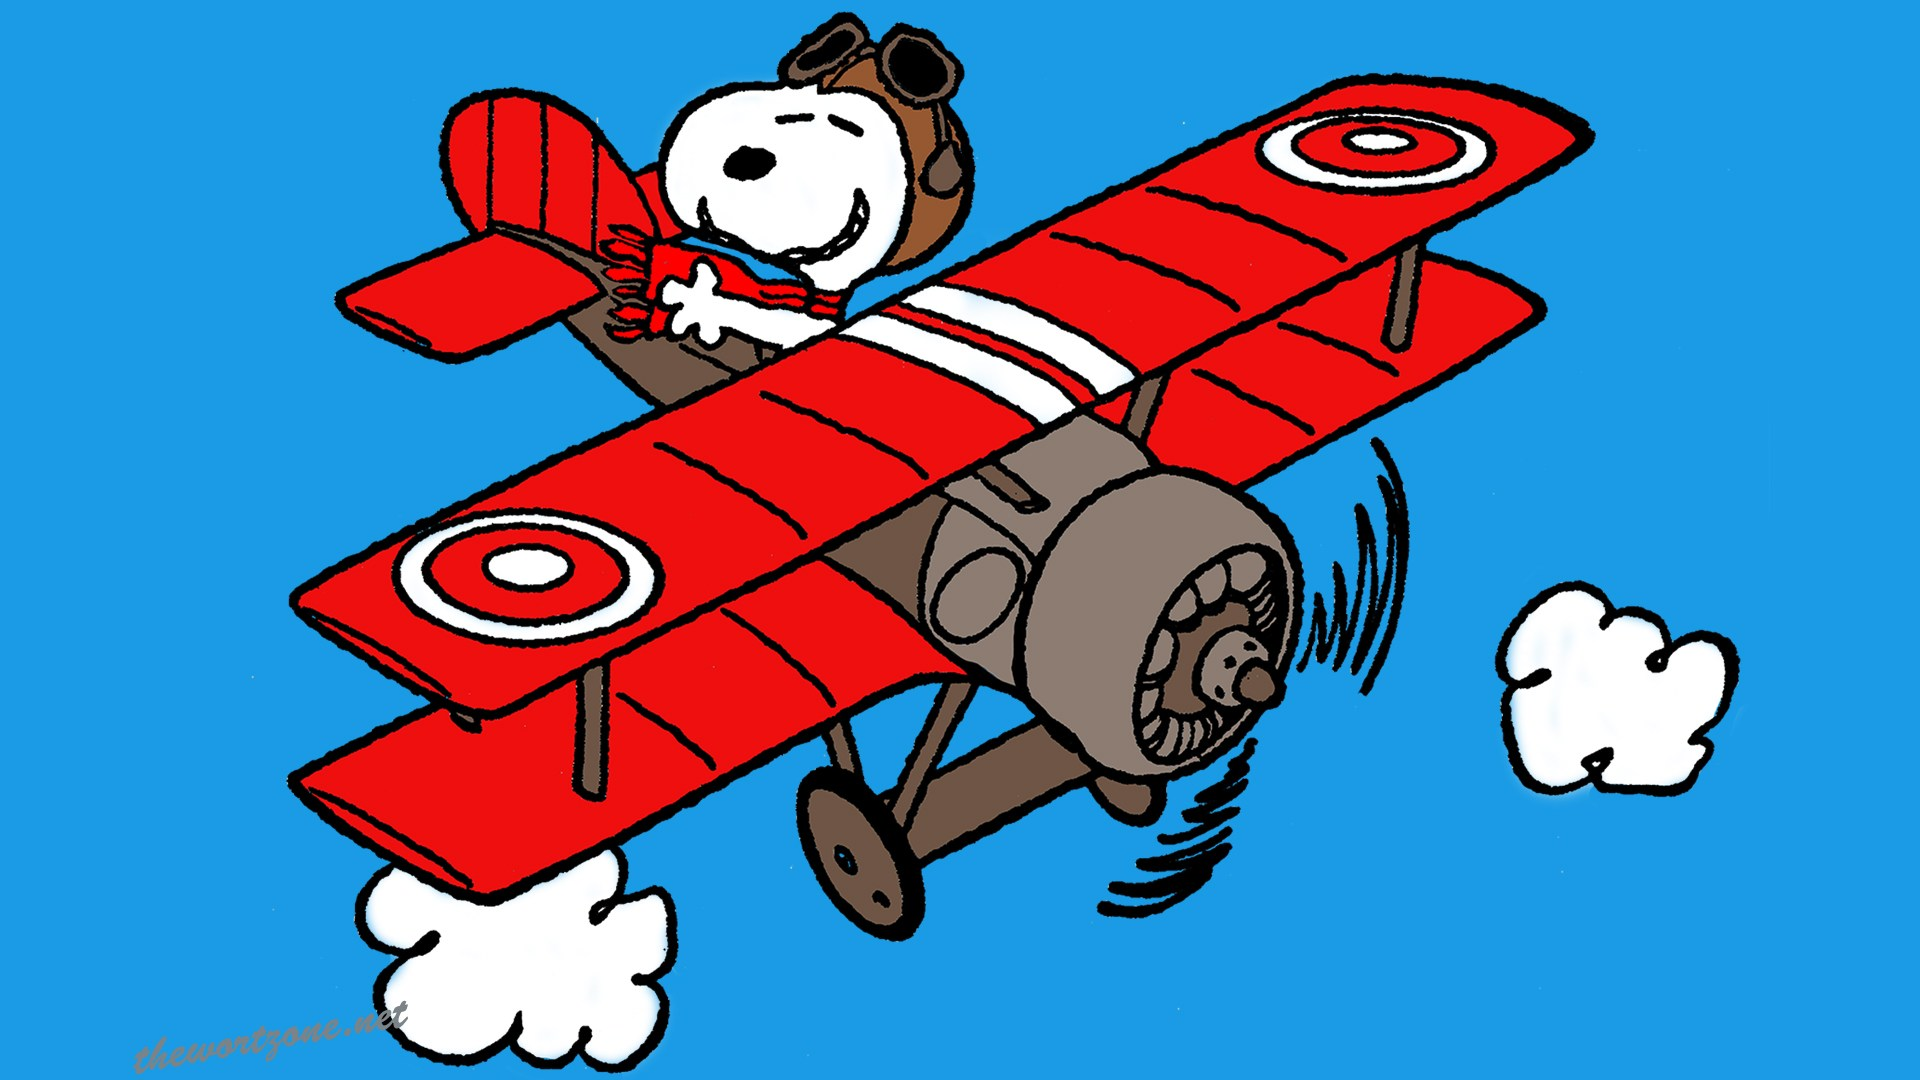 Snoopy Sopwith Camel Red Baron